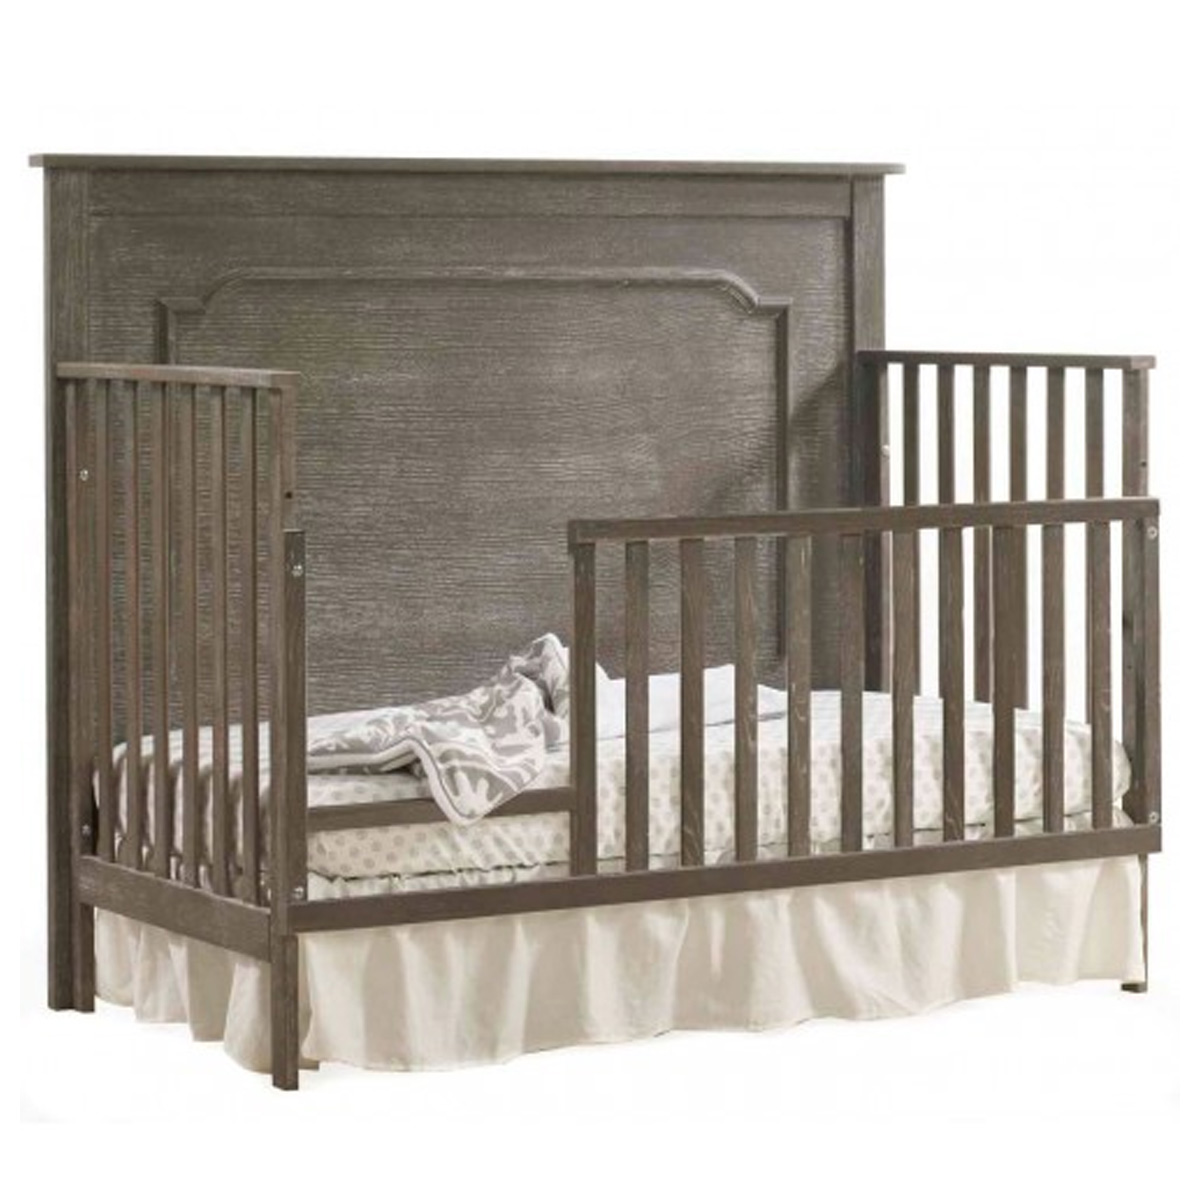 Miraculous Nest Emerson 4 In 1 Convertible Crib In Owl Pdpeps Interior Chair Design Pdpepsorg